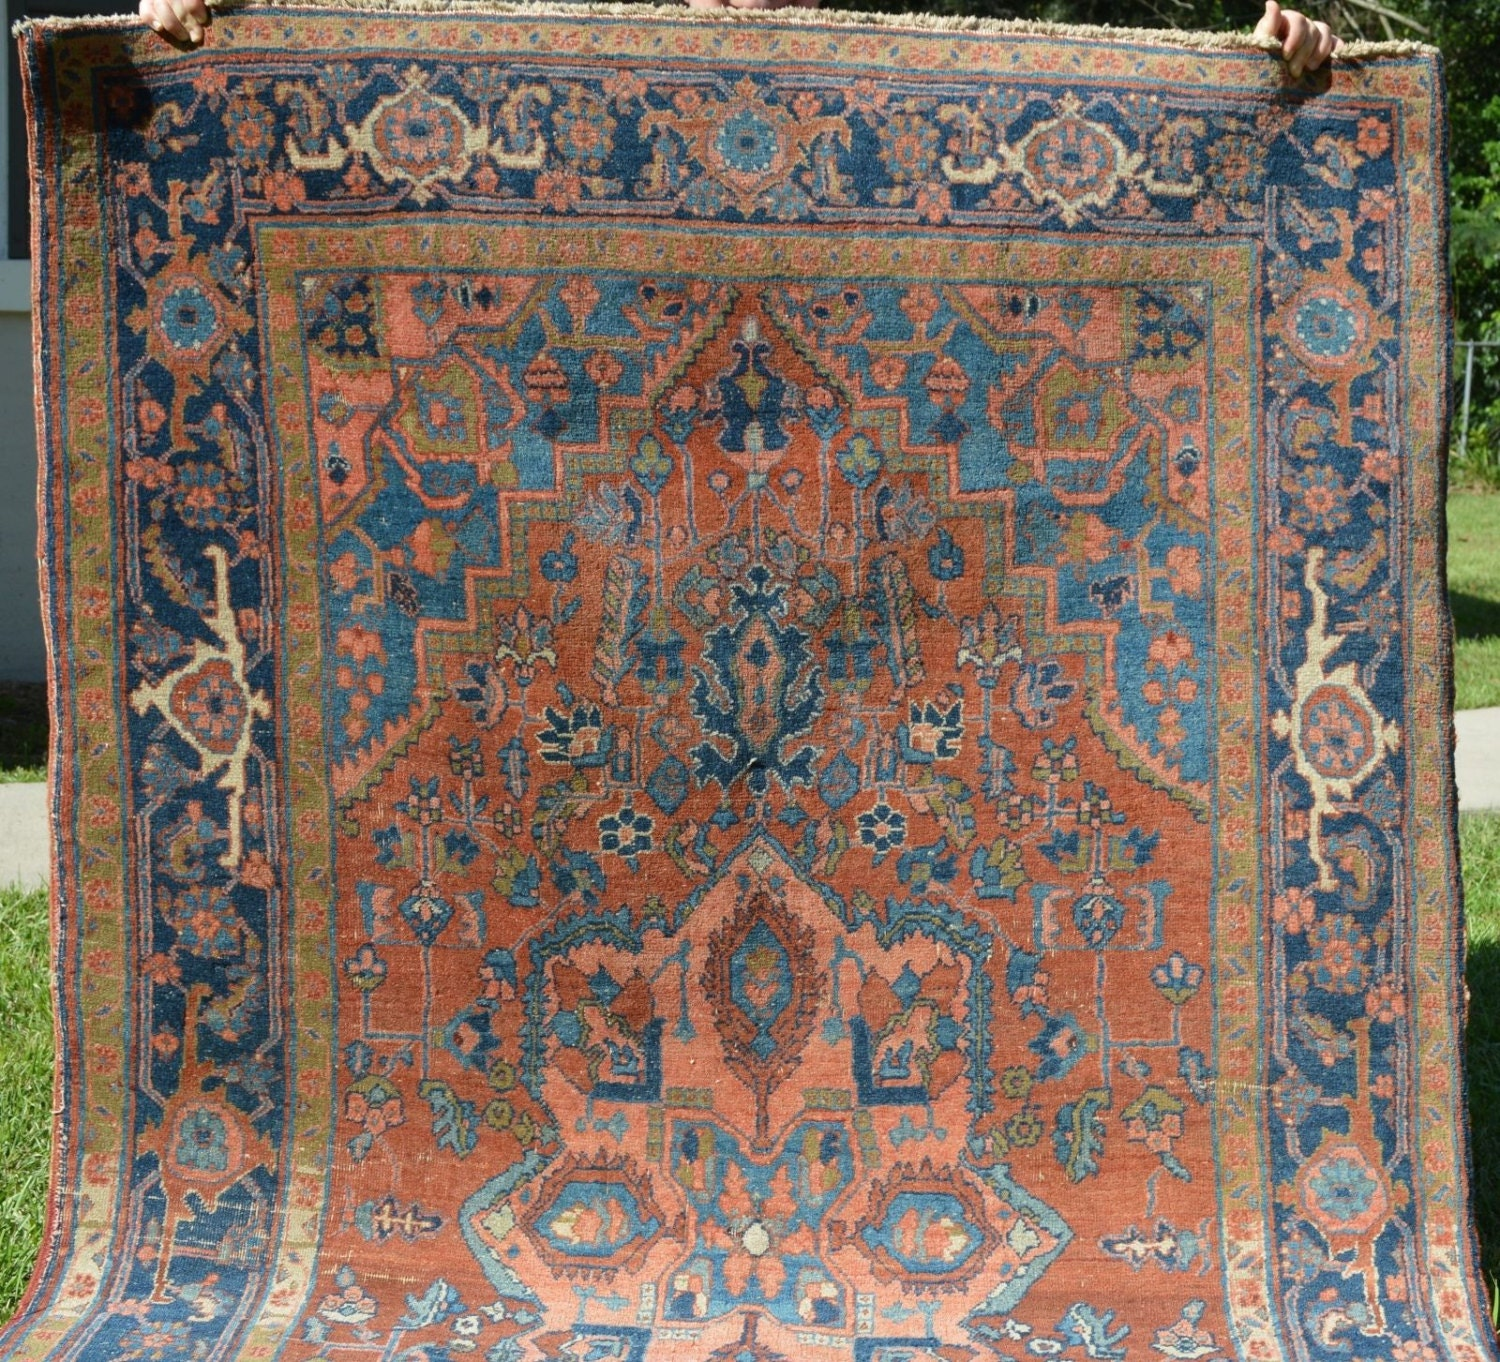 Sale Antique Persian Heriz Rug With Center Medallion  Rust. Living Room Wall Quotes. Living Room Chairs That Swivel. Living Room With Vaulted Ceiling. Living Room Carpets For Sale. Net Curtains For Living Room. Benches For Living Rooms. Living Room Soho. Living Room Furniture Placement